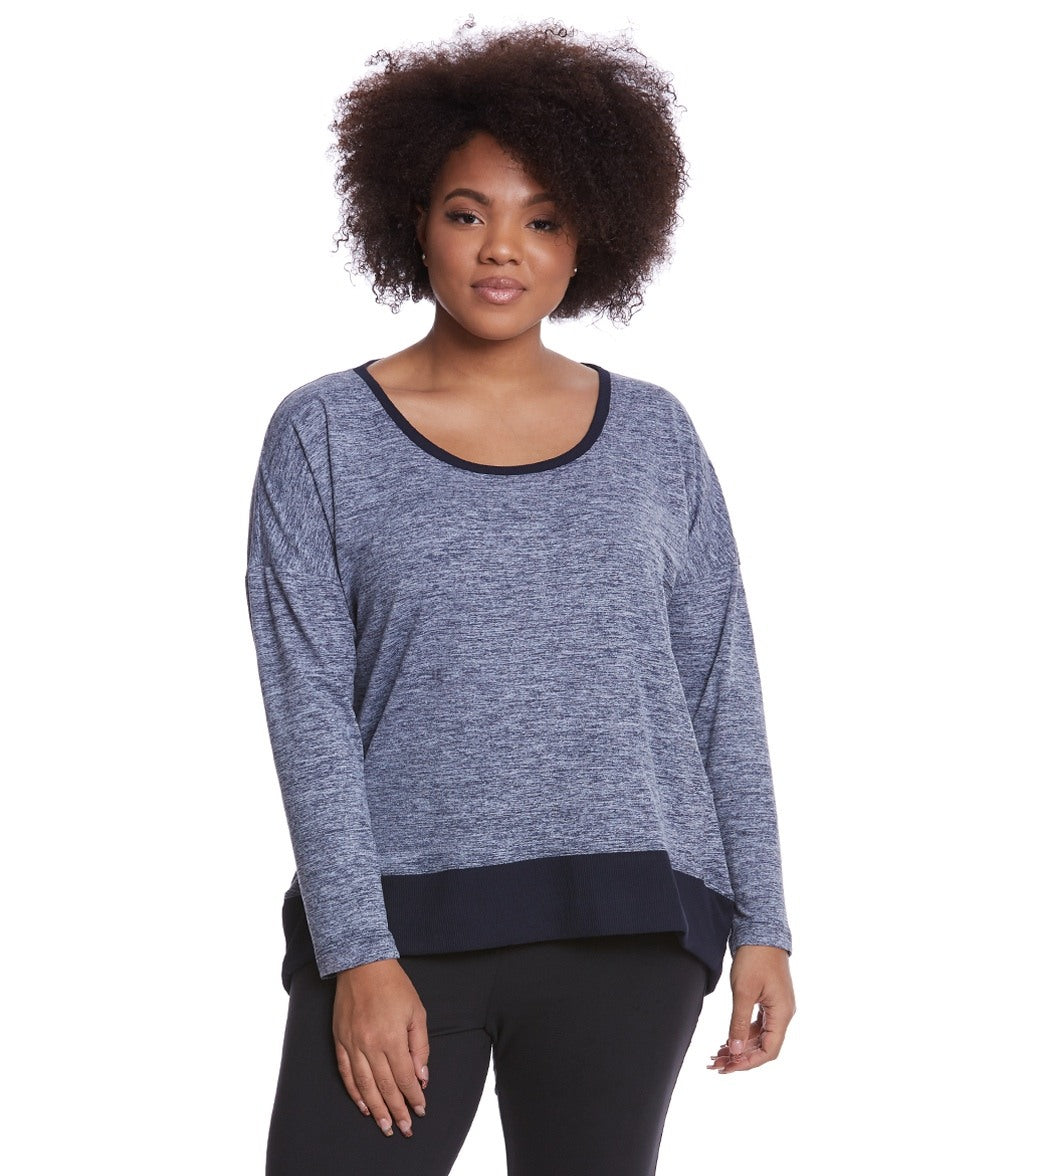 Stay comfy in the Balance Collection Plus Alexa Pullover, made from cozy jersey and rib knit fabric for a comfortable fit that you won\\\'t want to take off. Features Crew neckline. super soft and cozy. Rib knit hem and neck band. Hem drops at back. Details Fabric: 88% Polyester, 12% Spandex Color: Black, Blue Style Features: Solid Fit: Relaxed Length: Below hip Country of Origin Imported. About Balance Collection: The Balance Collection by Marika features women\\\'s clothes designed for the on-the-go